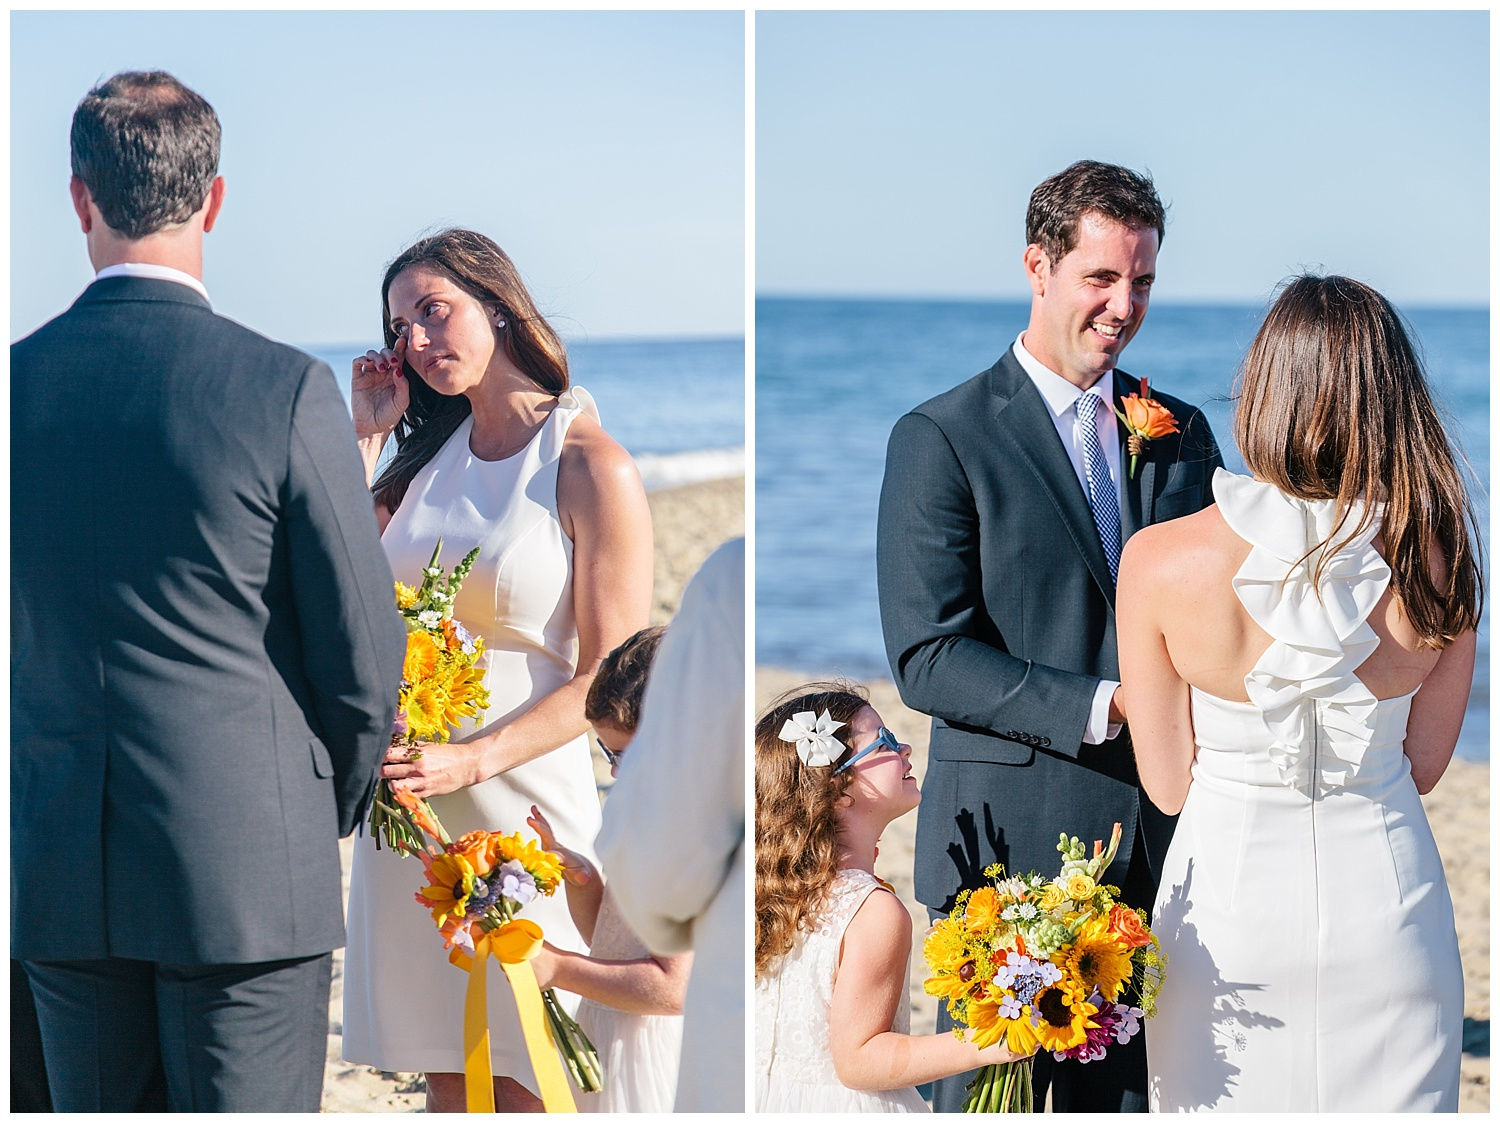 emily-belson-photography-nantucket-elopement-13.jpg